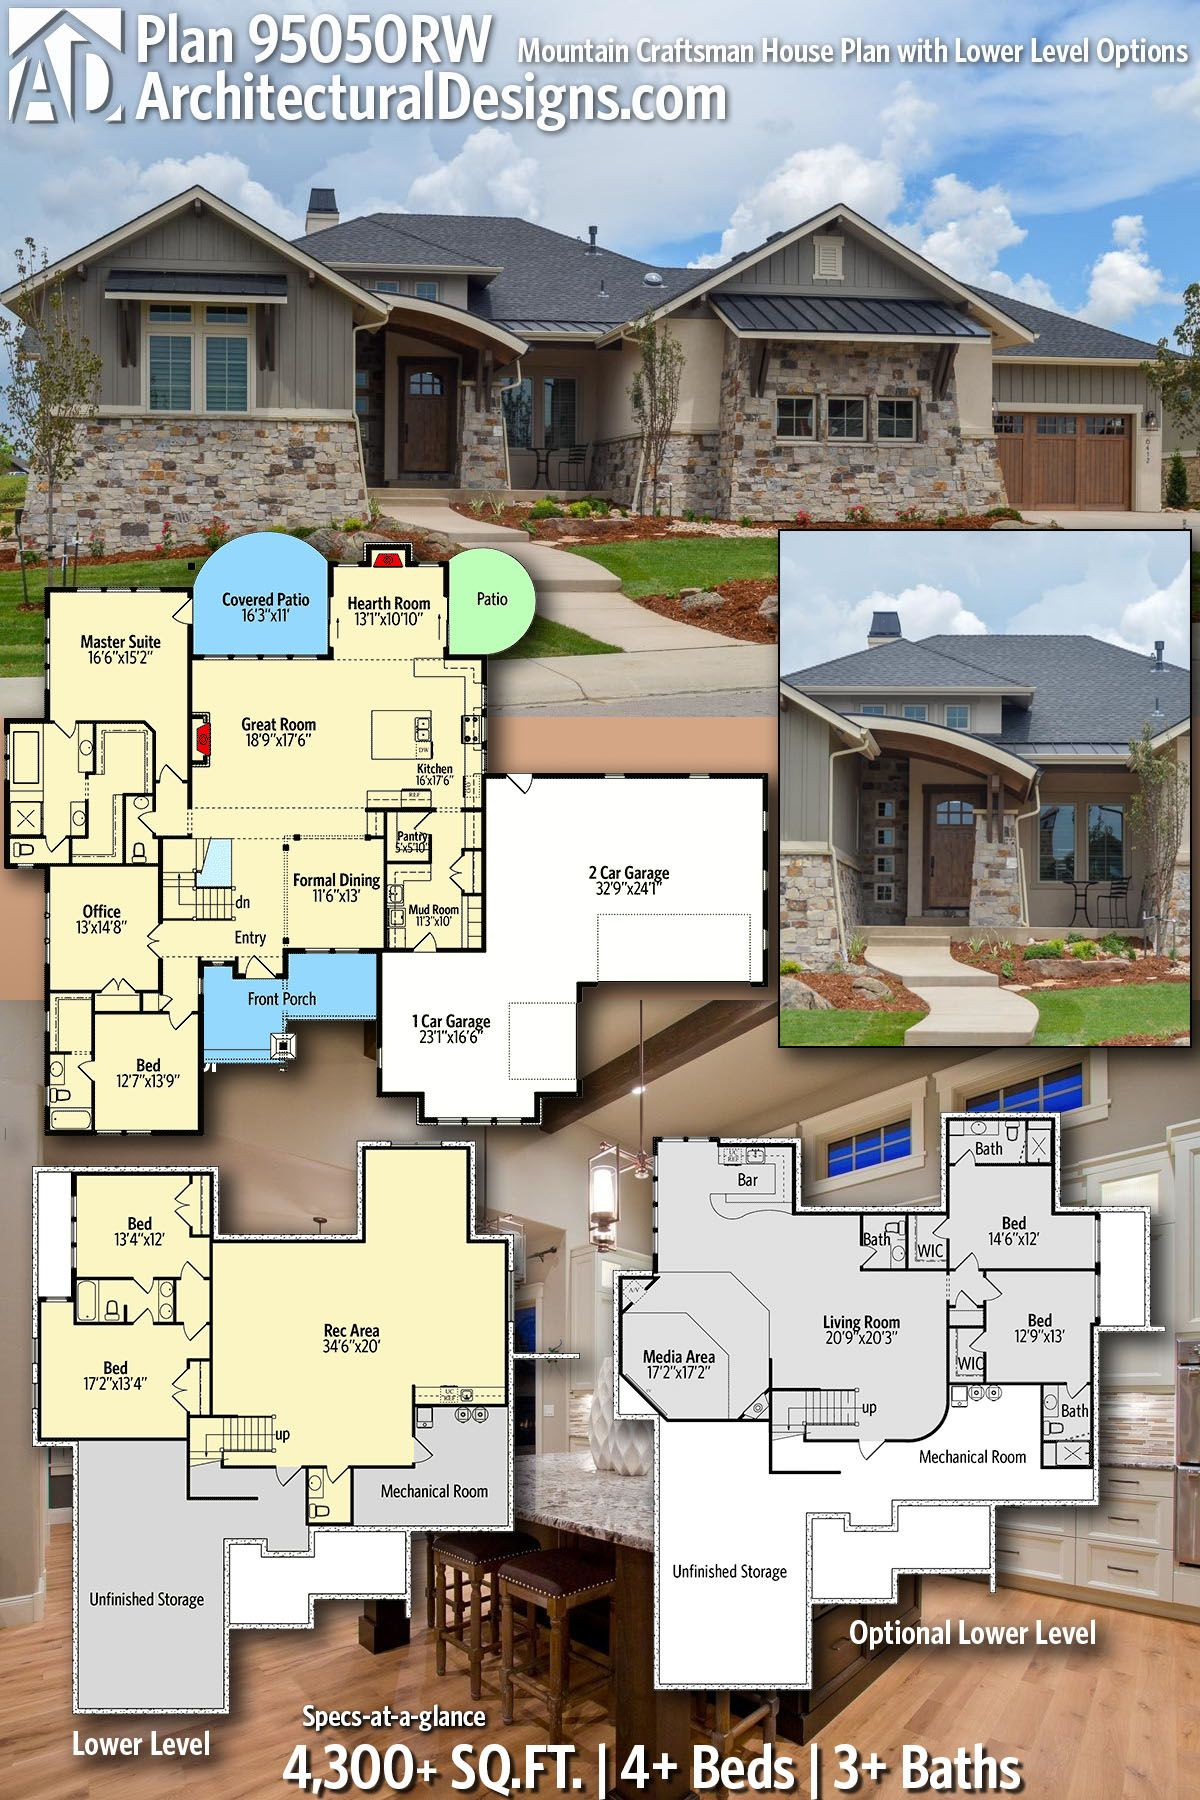 Plan 95050RW: Mountain Craftsman House Plan with Lower Level Options